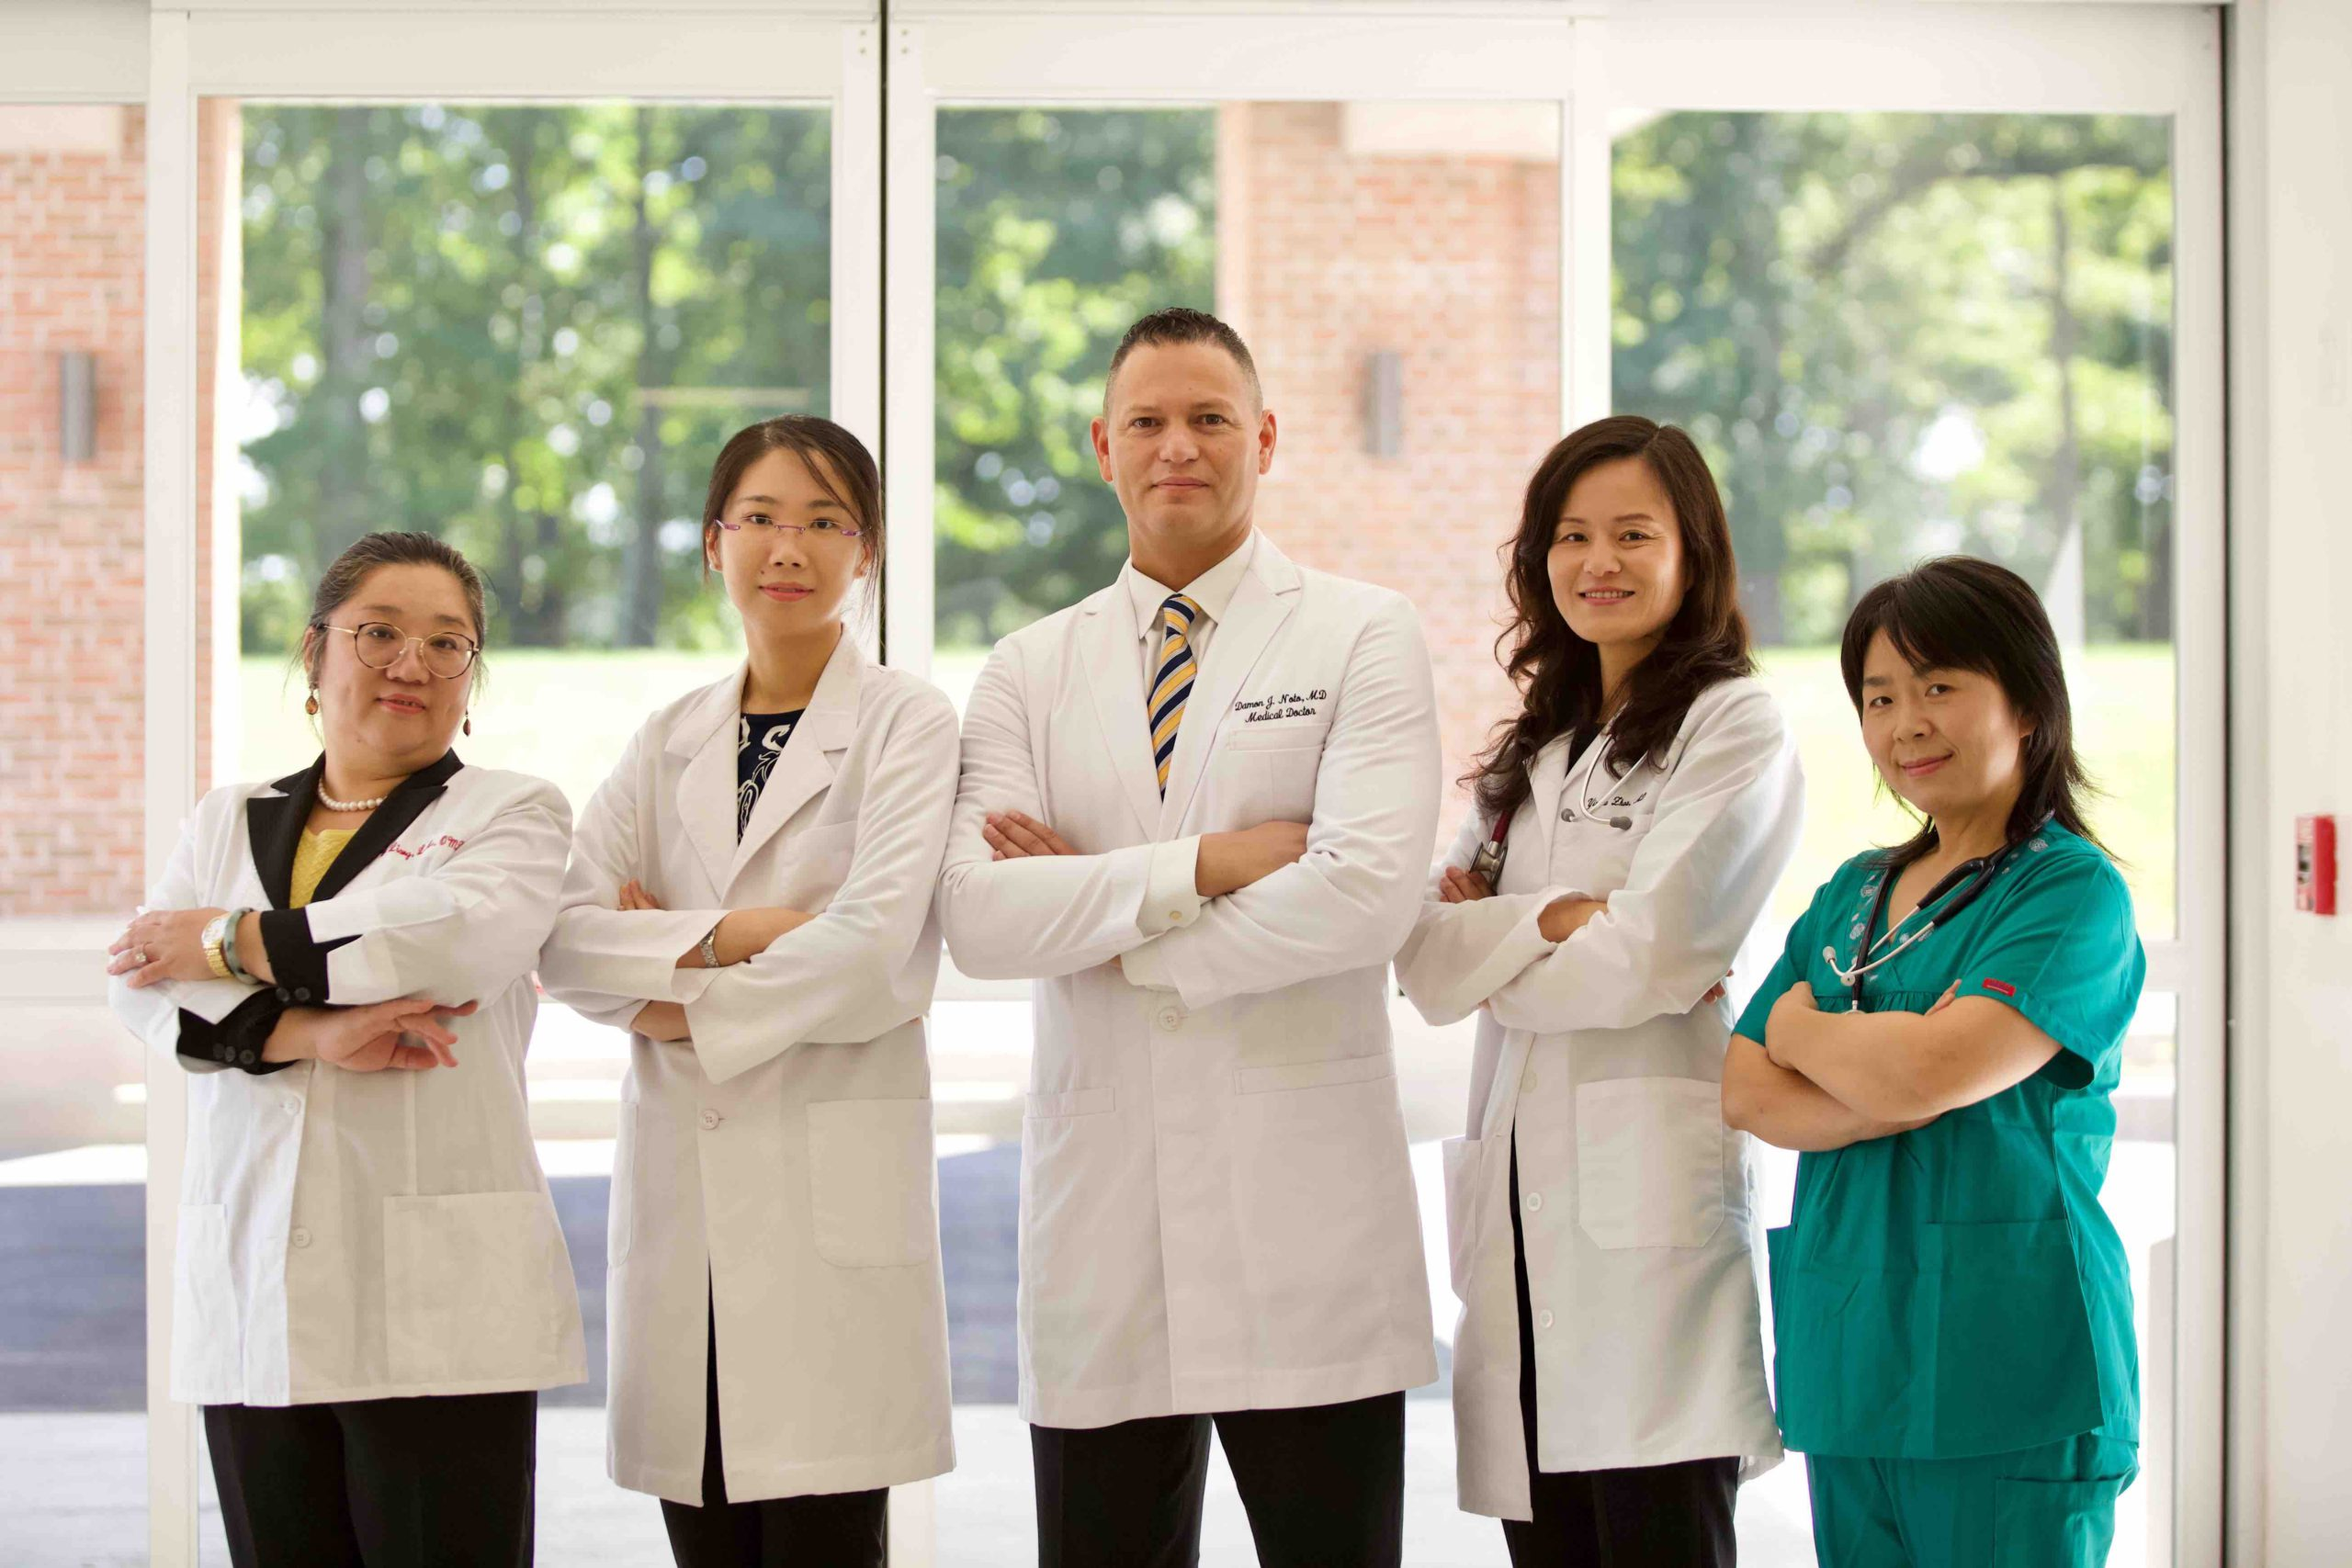 Medical Practitioners at NMC